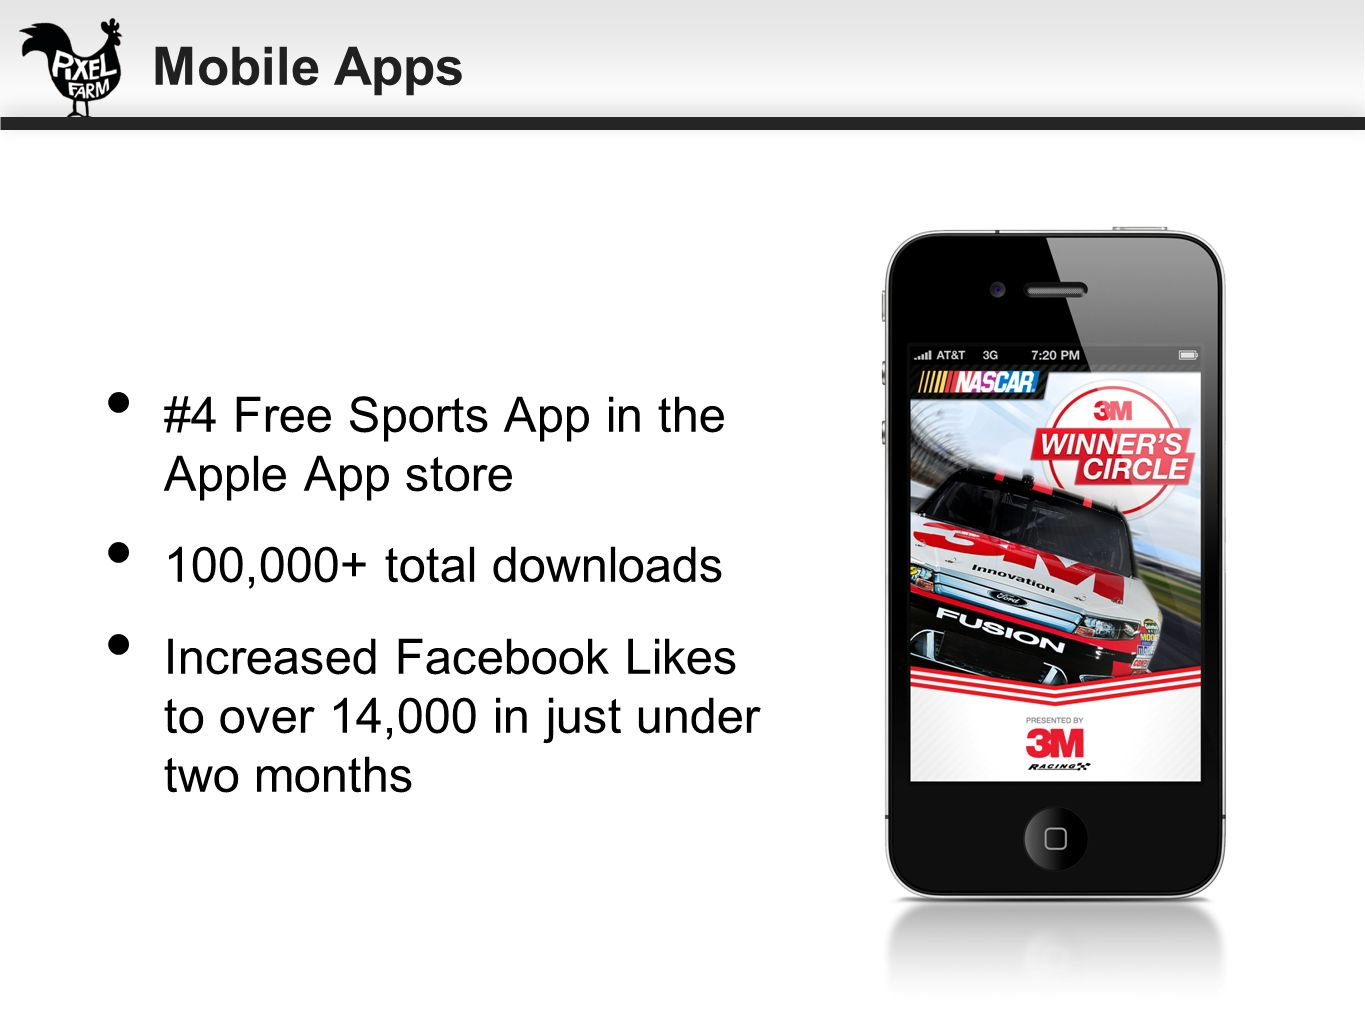 #4 Free Sports App in the Apple App store 100,000+ total downloads Increased Facebook Likes to over 14,000 in just under two months Mobile Apps